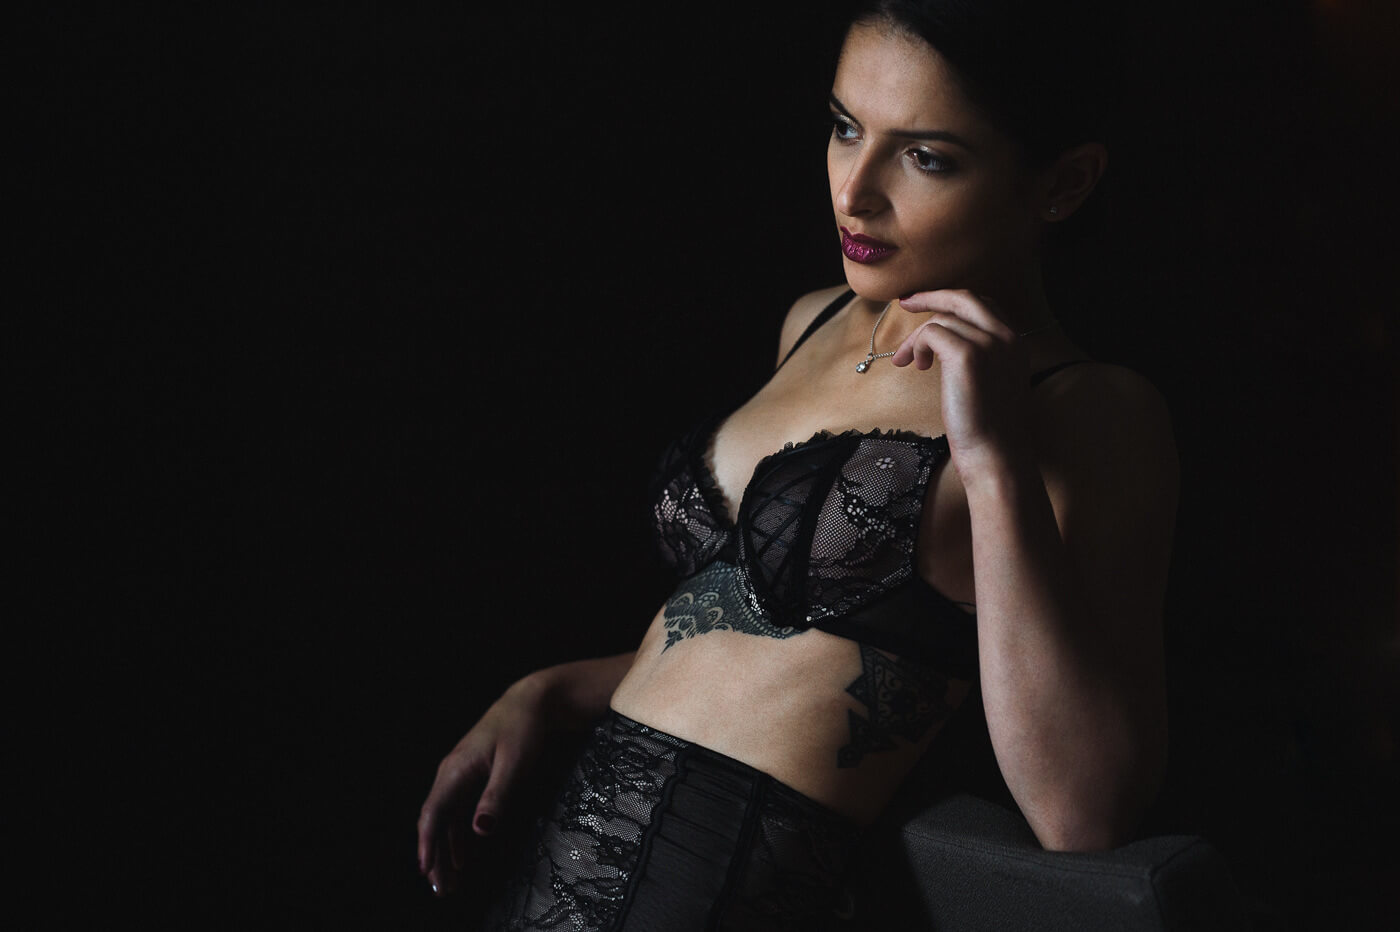 photographe, boudoir, séance photo boudoir, vannes